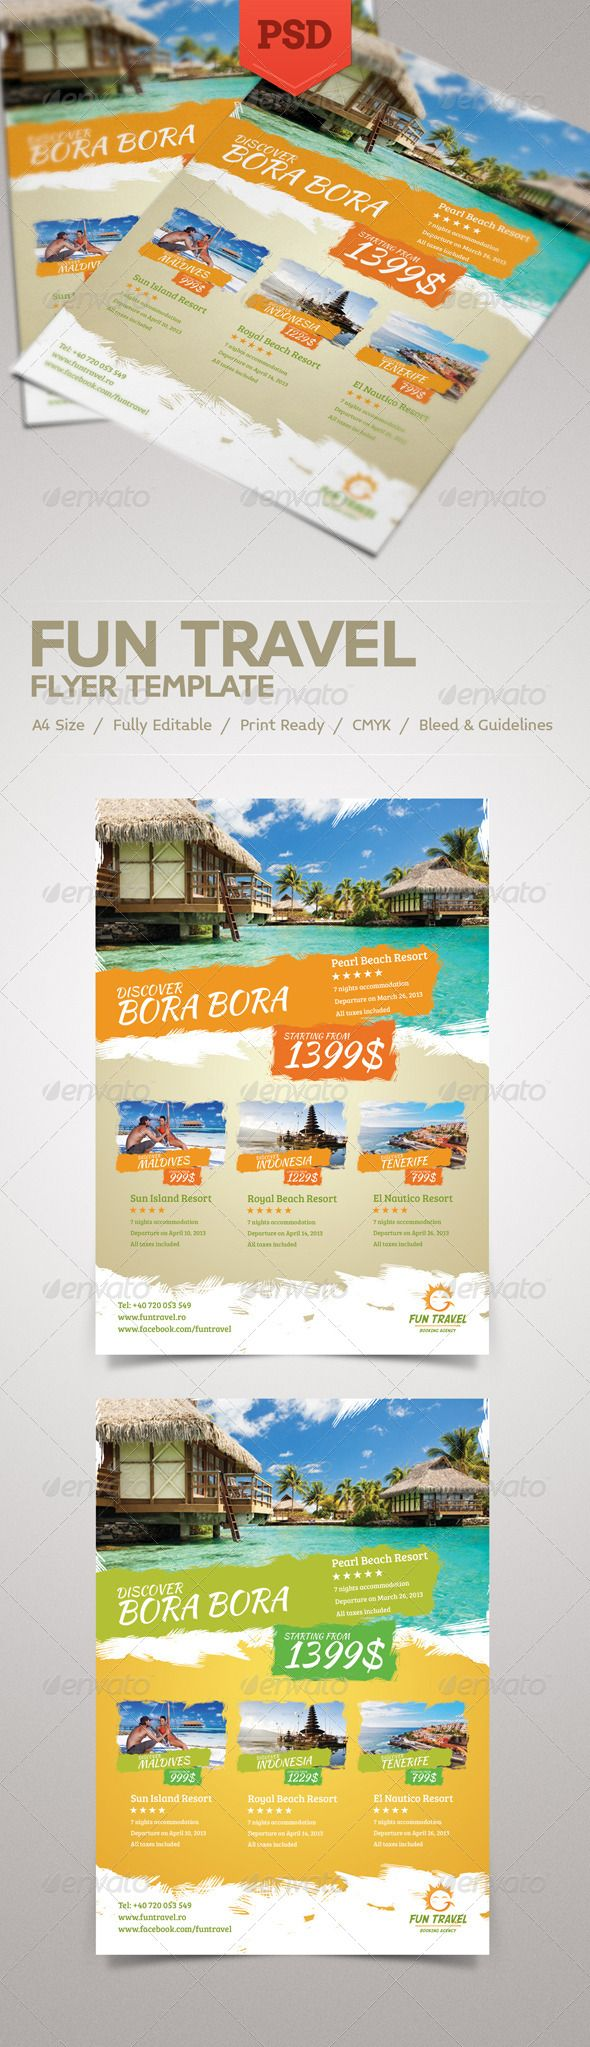 326 best images about work on pinterest image search for Fun brochure templates